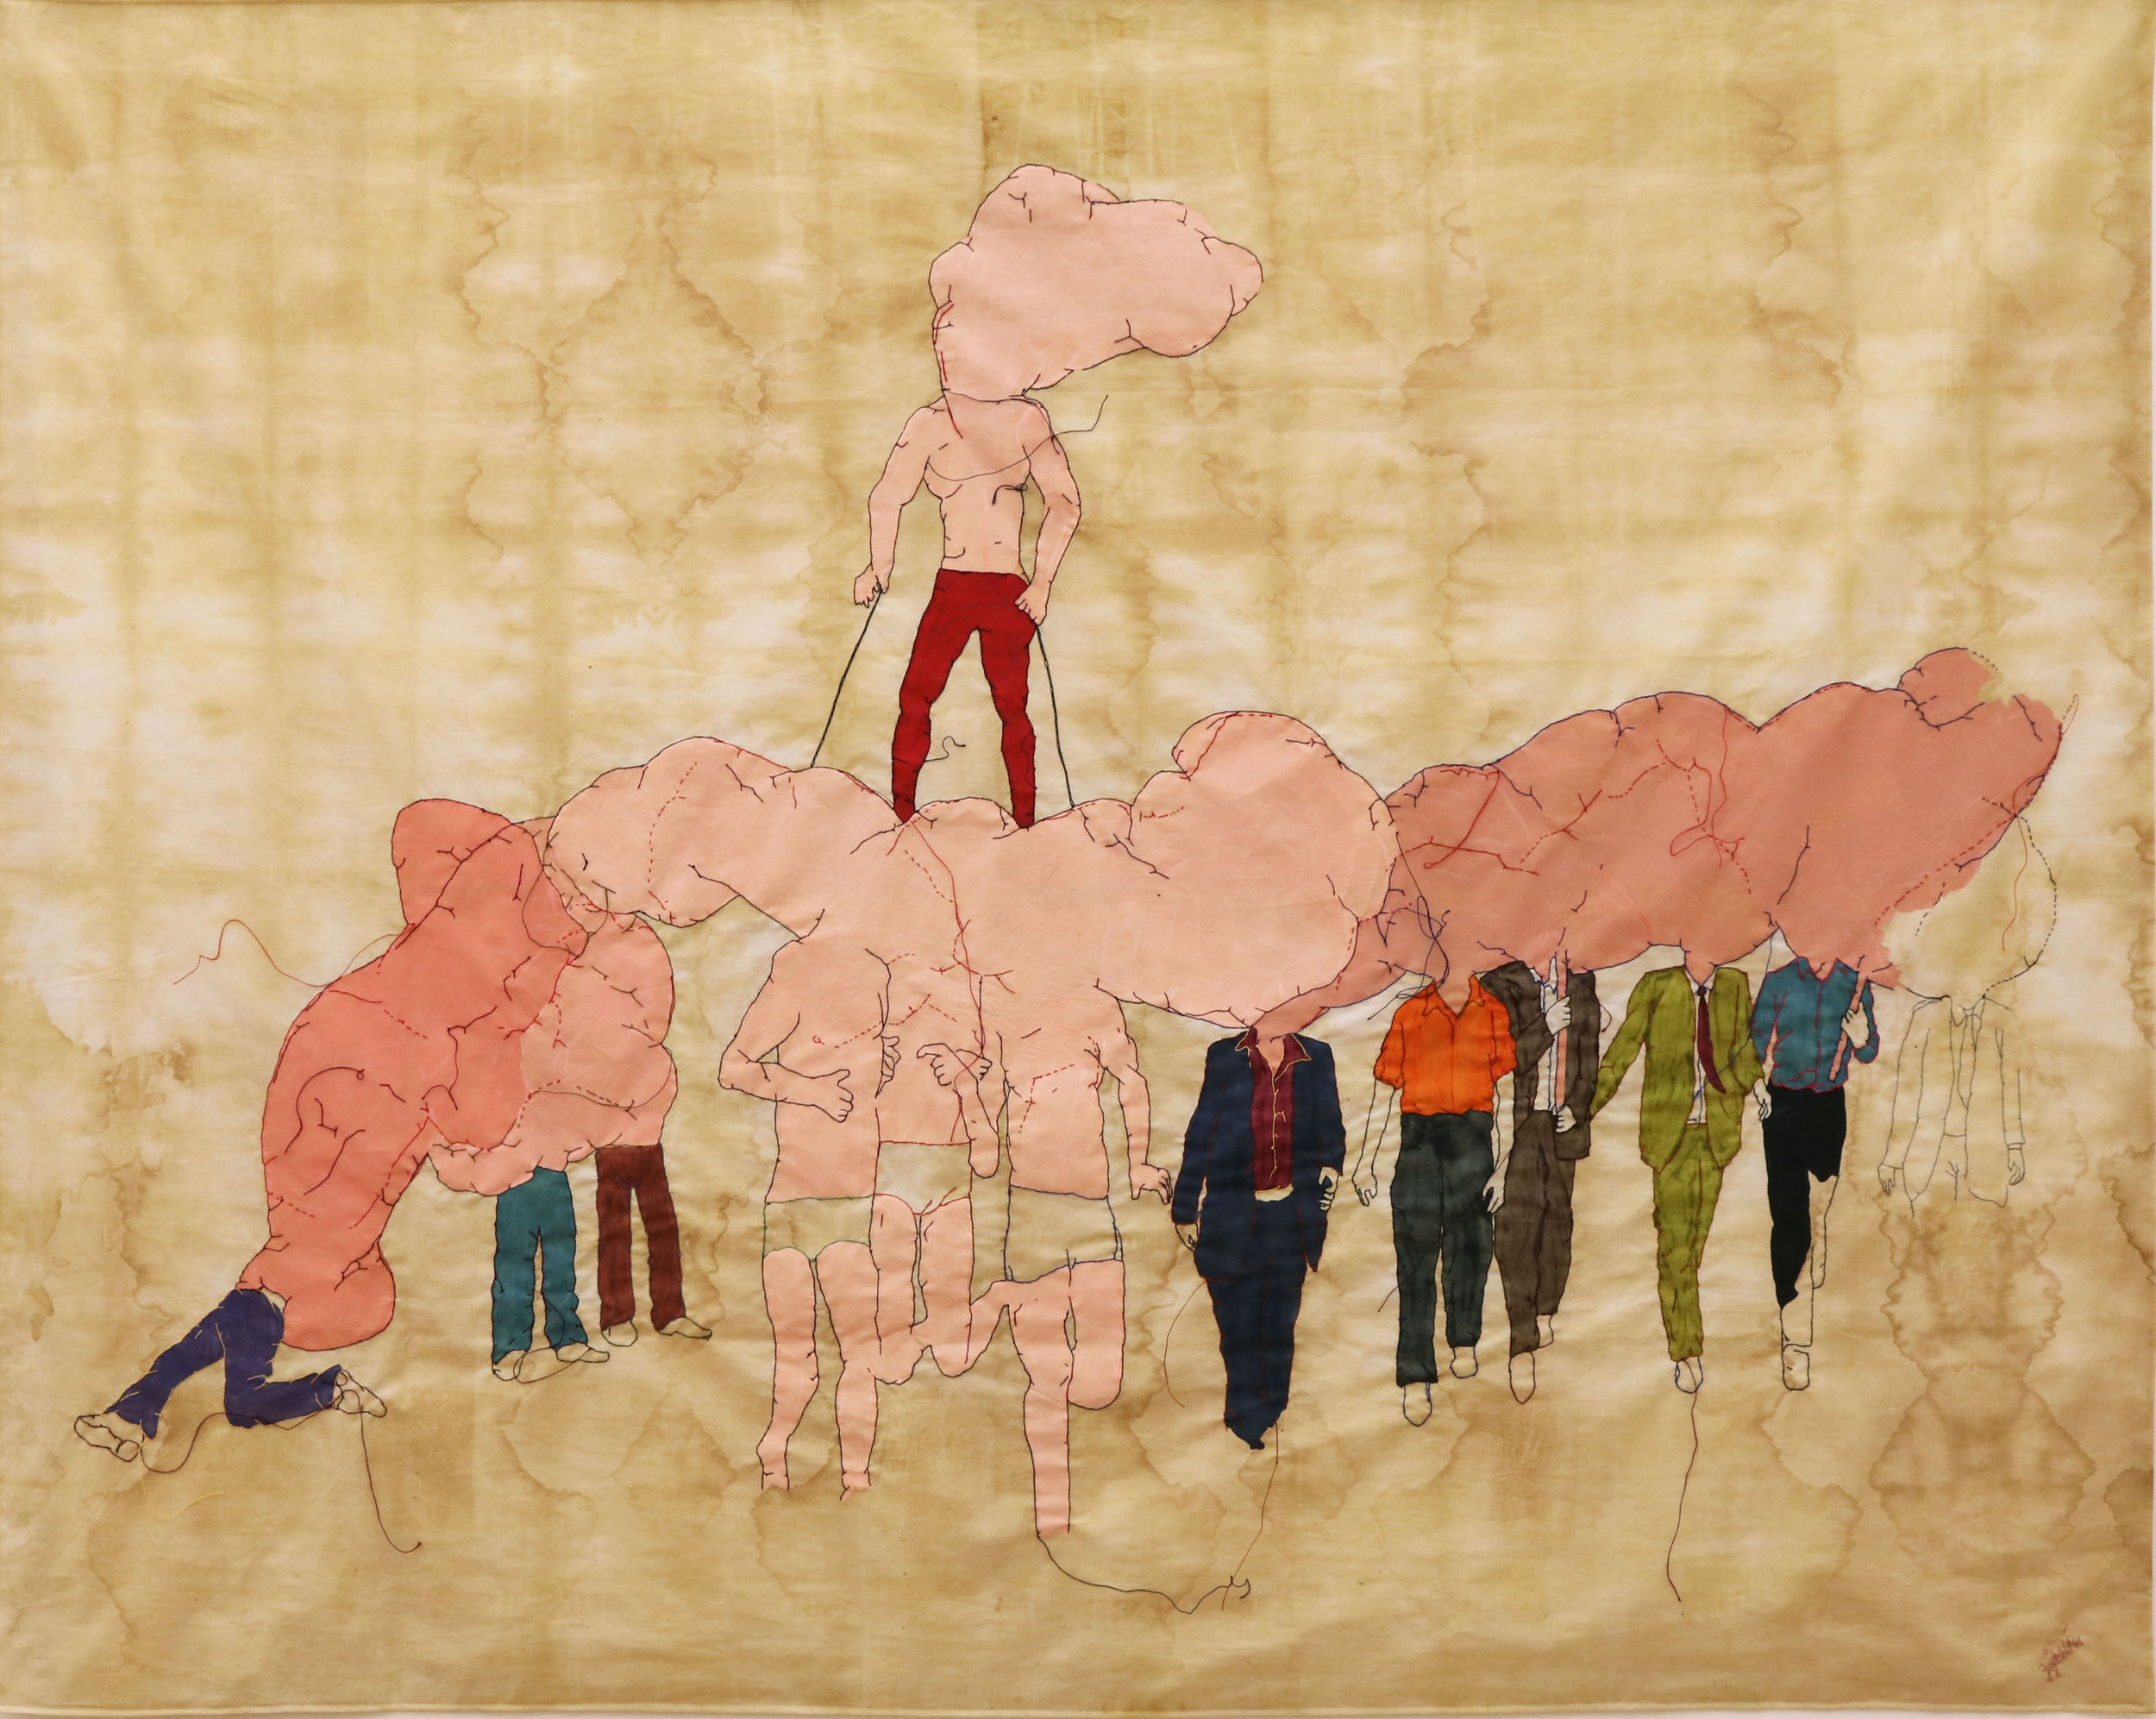 Absent Demonstrations, 2016, embroidery, painting on naturaldyed fabric, 116.5 x 146.5 cm